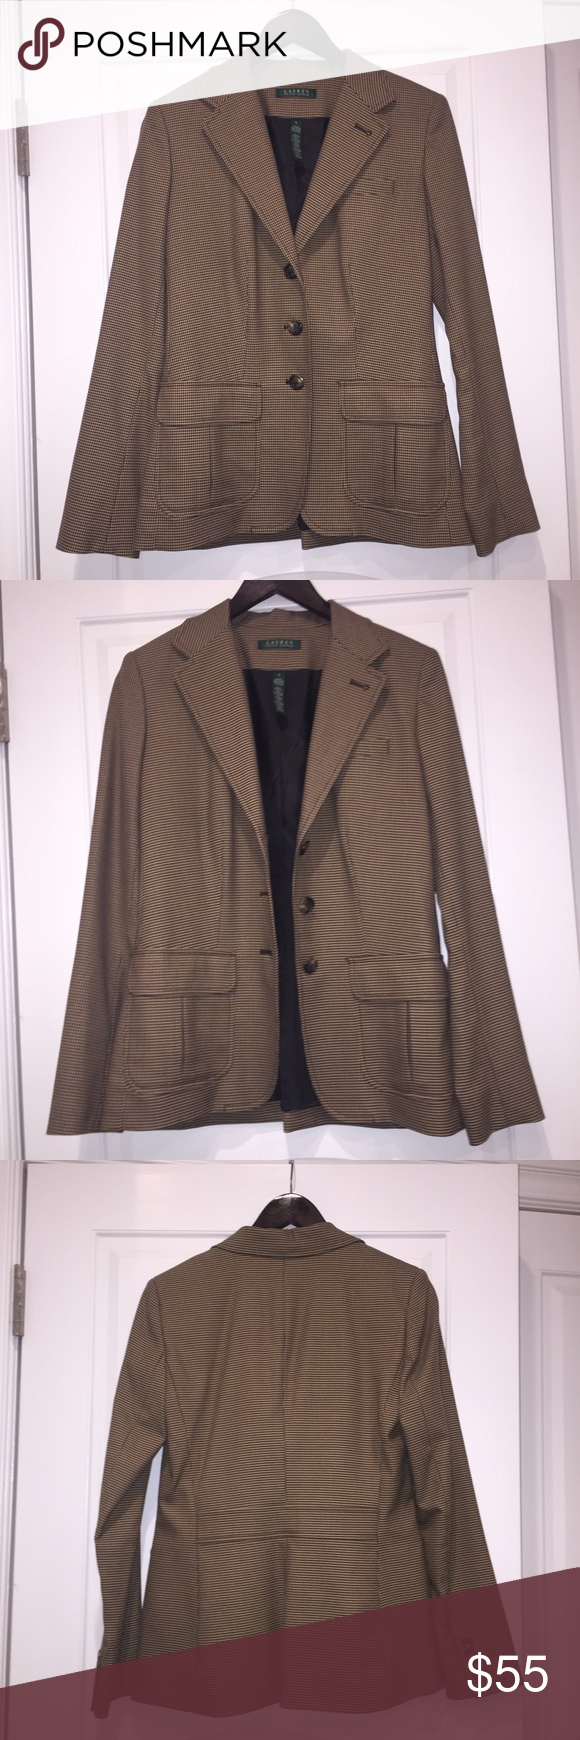 Ralph Lauren Women's Suit Blazer size 4 the chicest brown blazer for any women! perfect to impress at job interviews and at work regularly! the most complimenting shades of brown! very flattering shape! used but in great condition Lauren Ralph Lauren Jackets & Coats